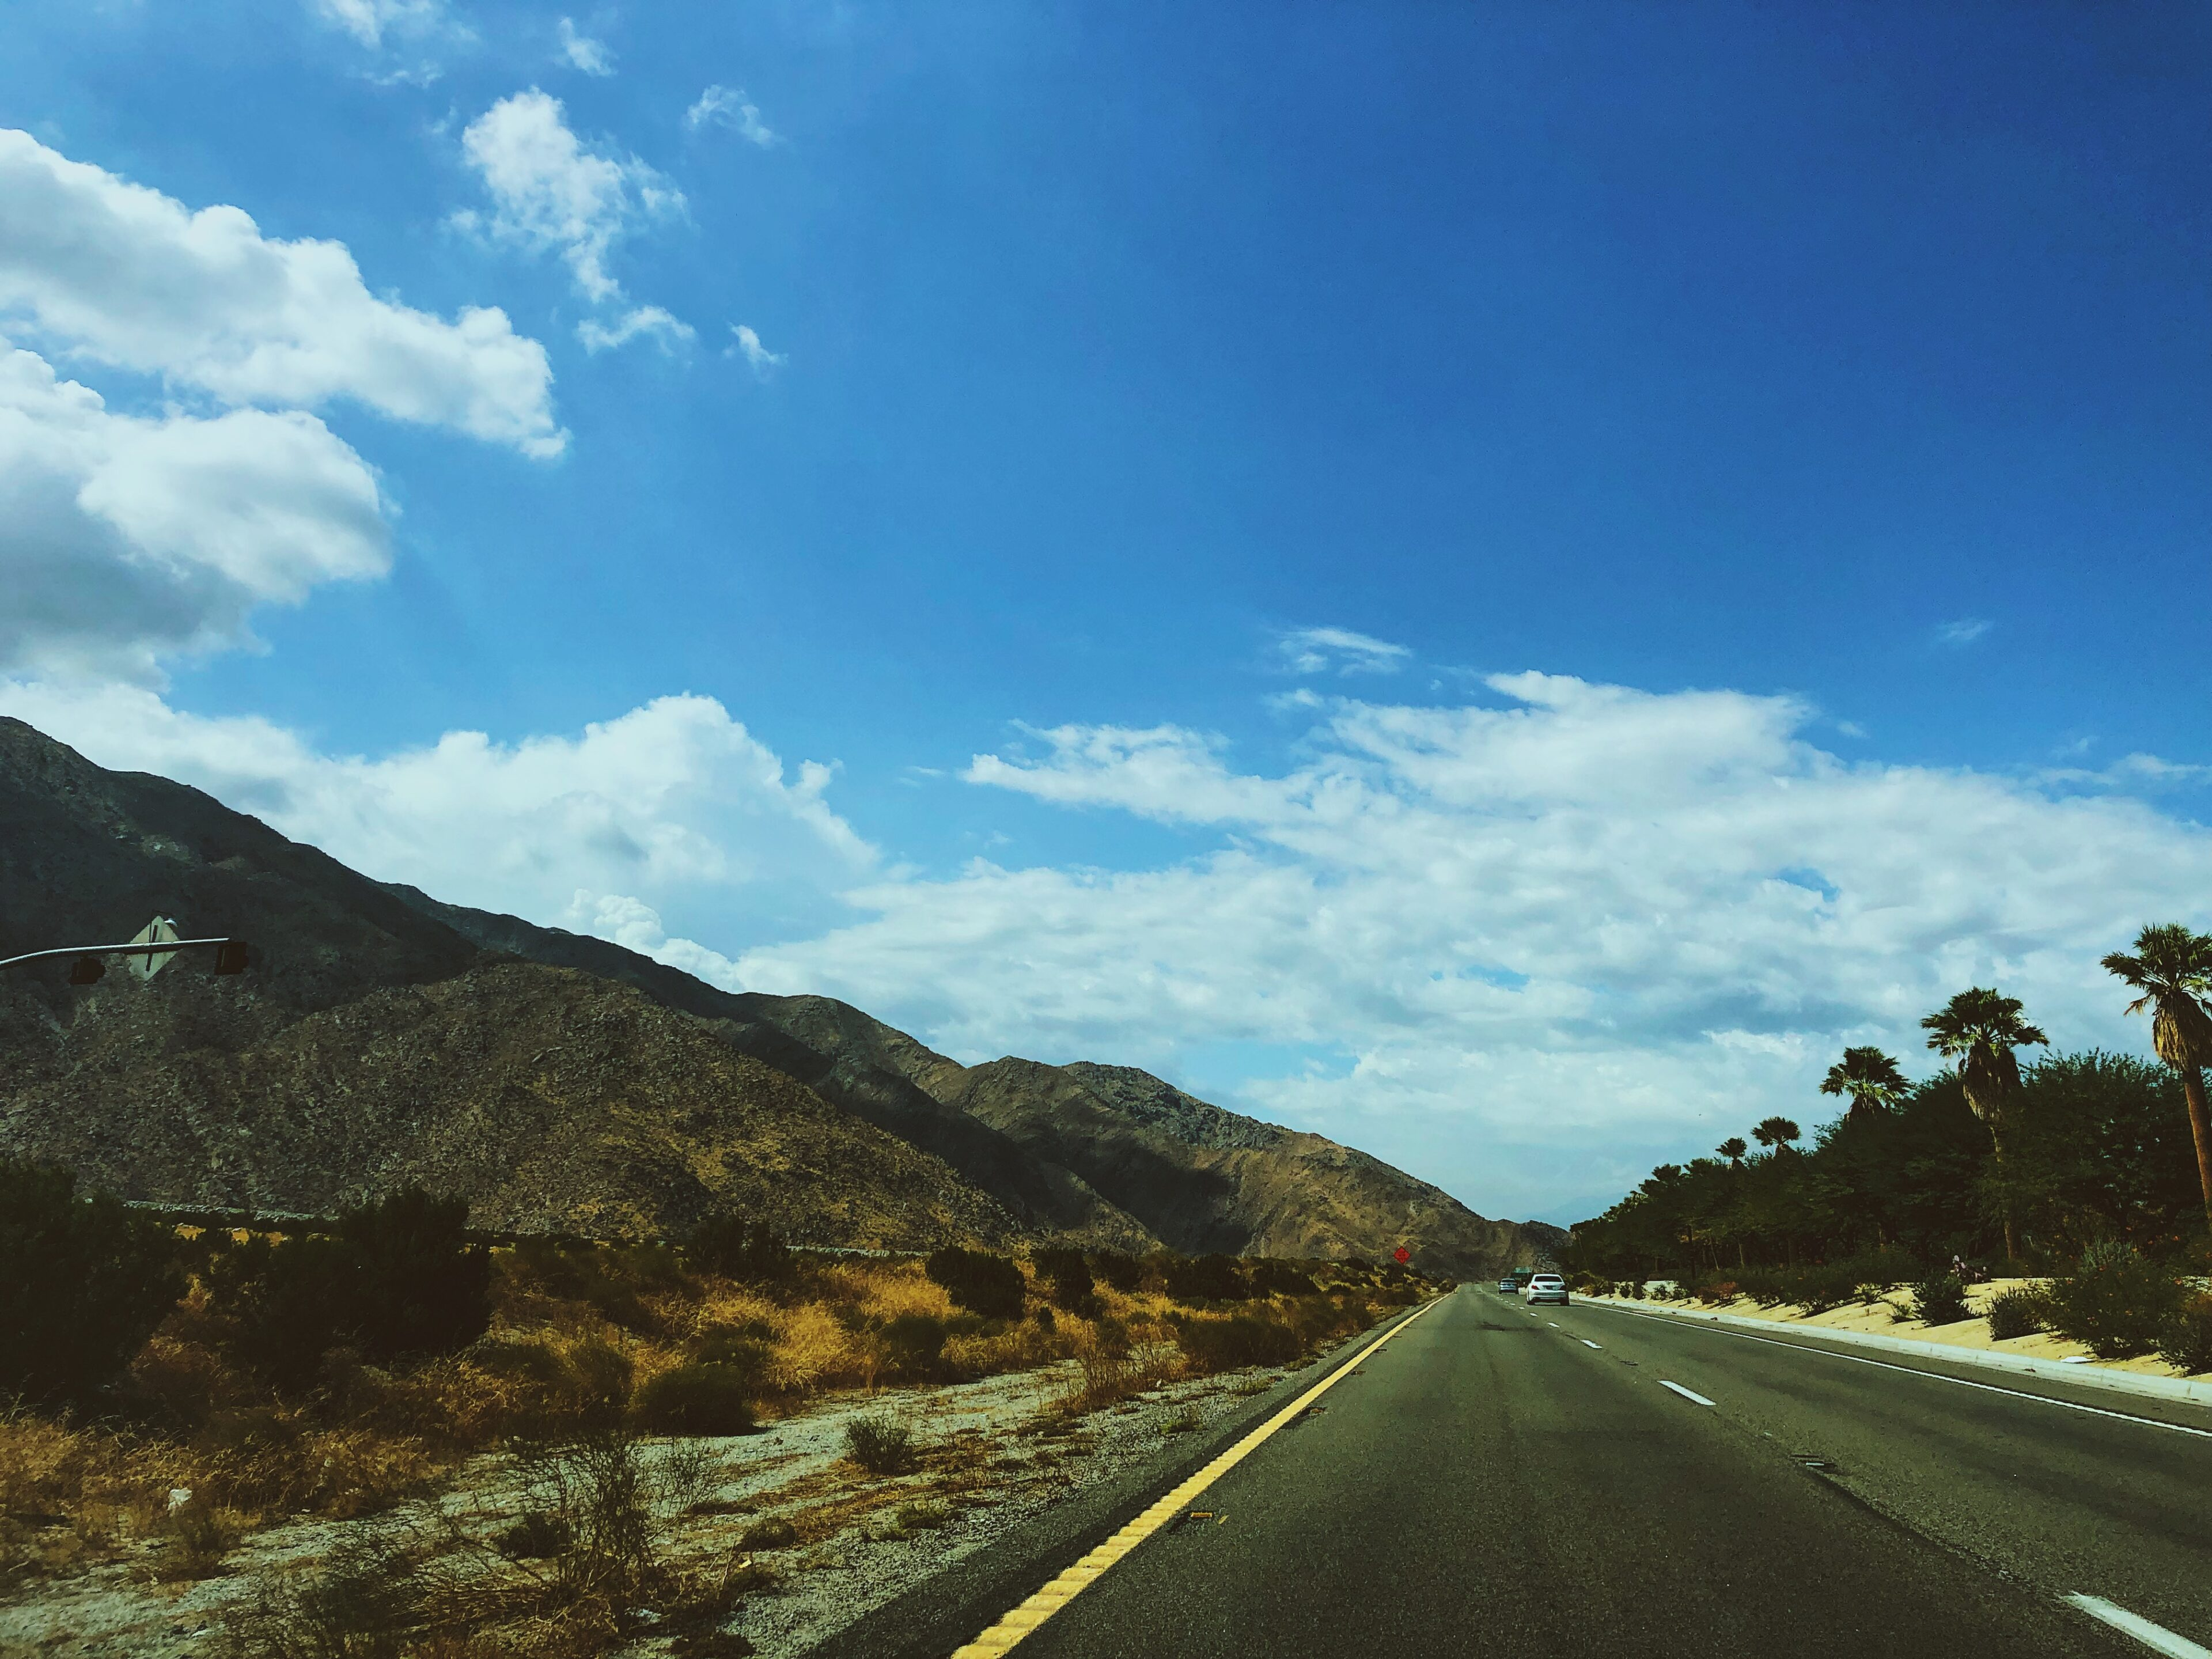 things to do in palm springs-highway road